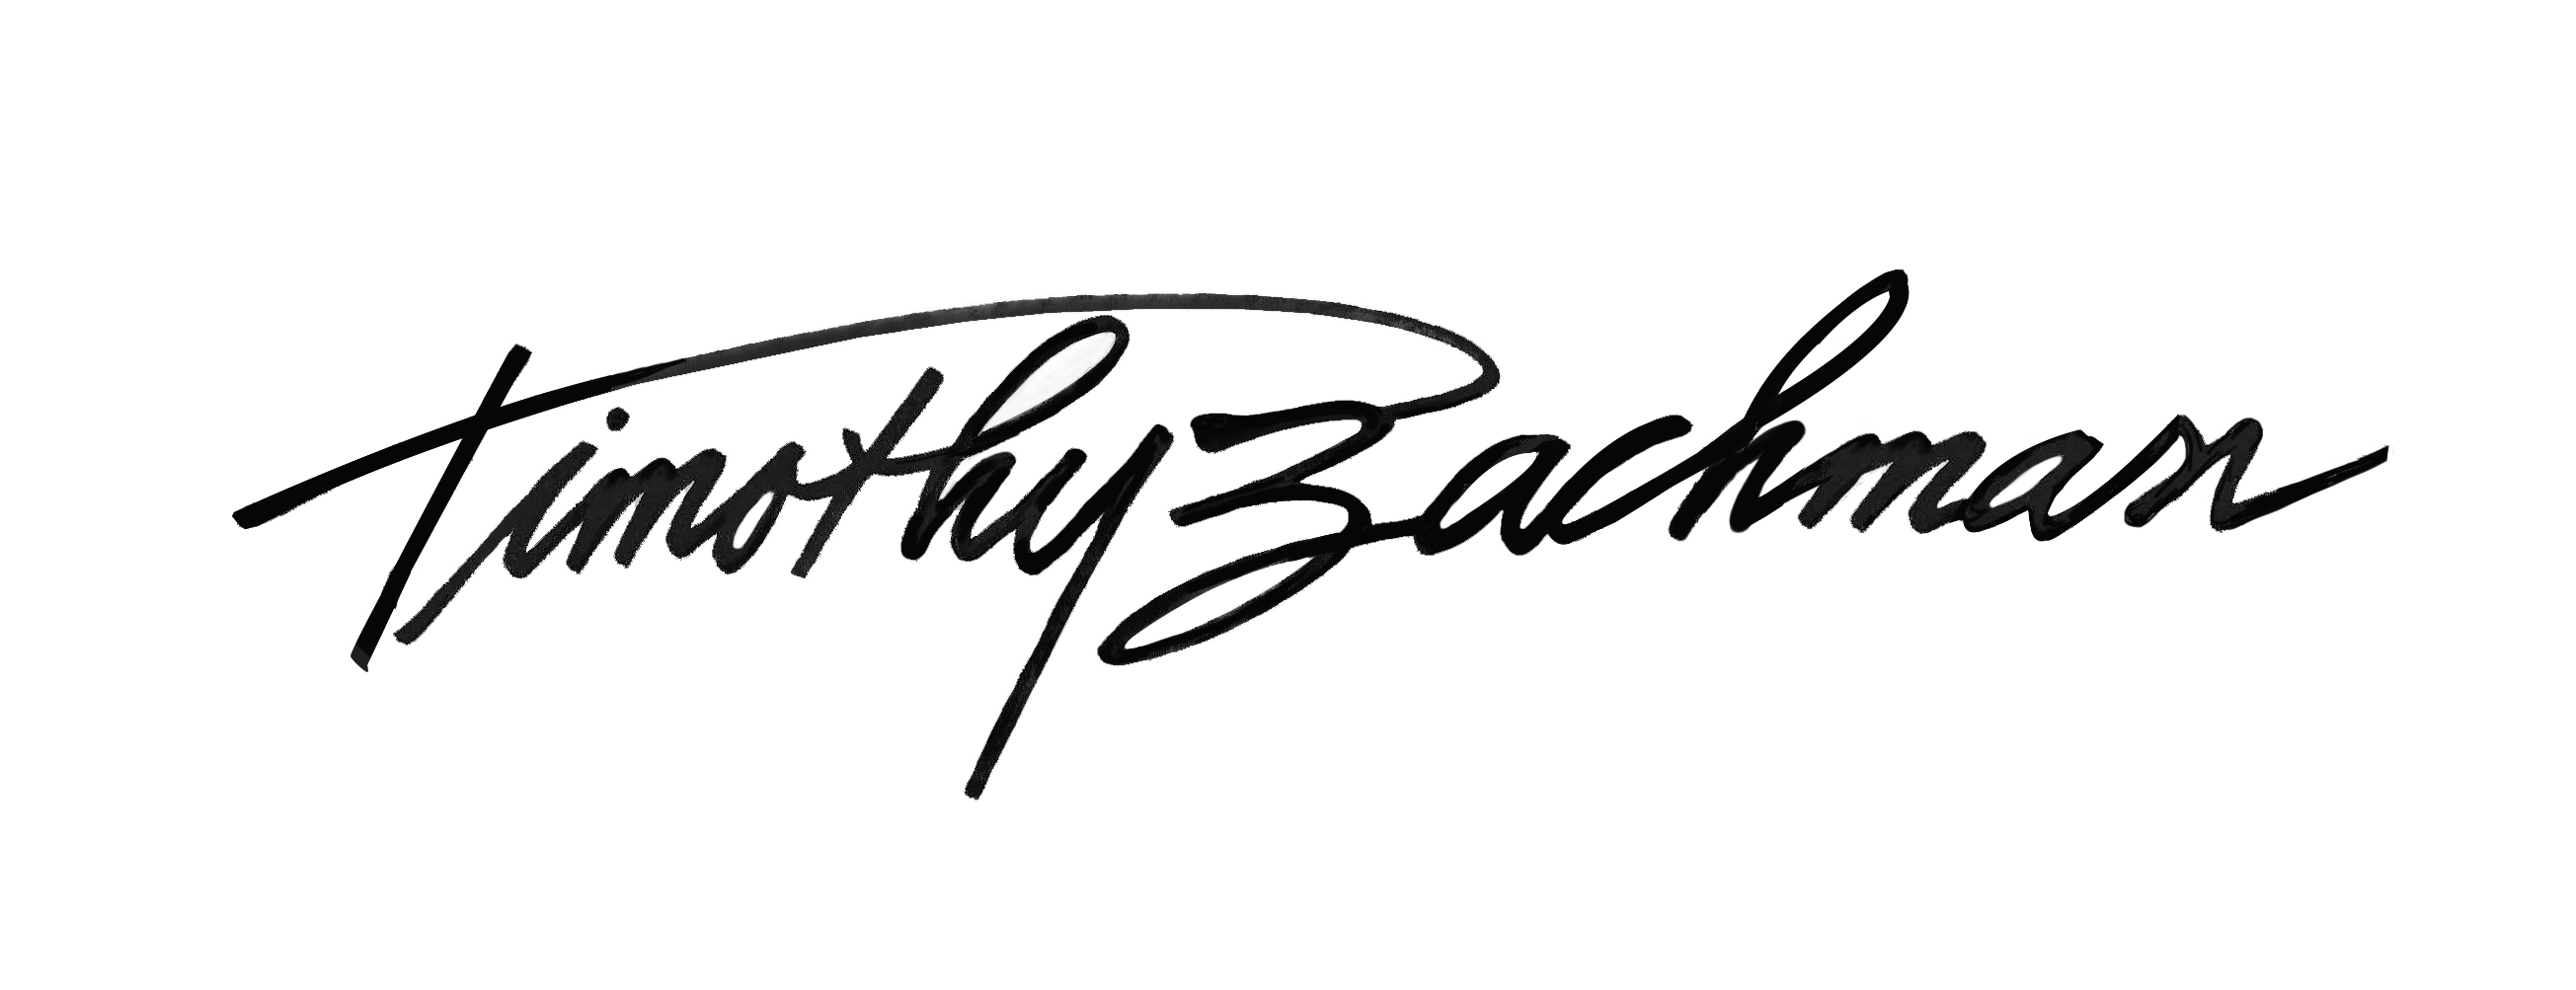 Timothy Bachman Signature